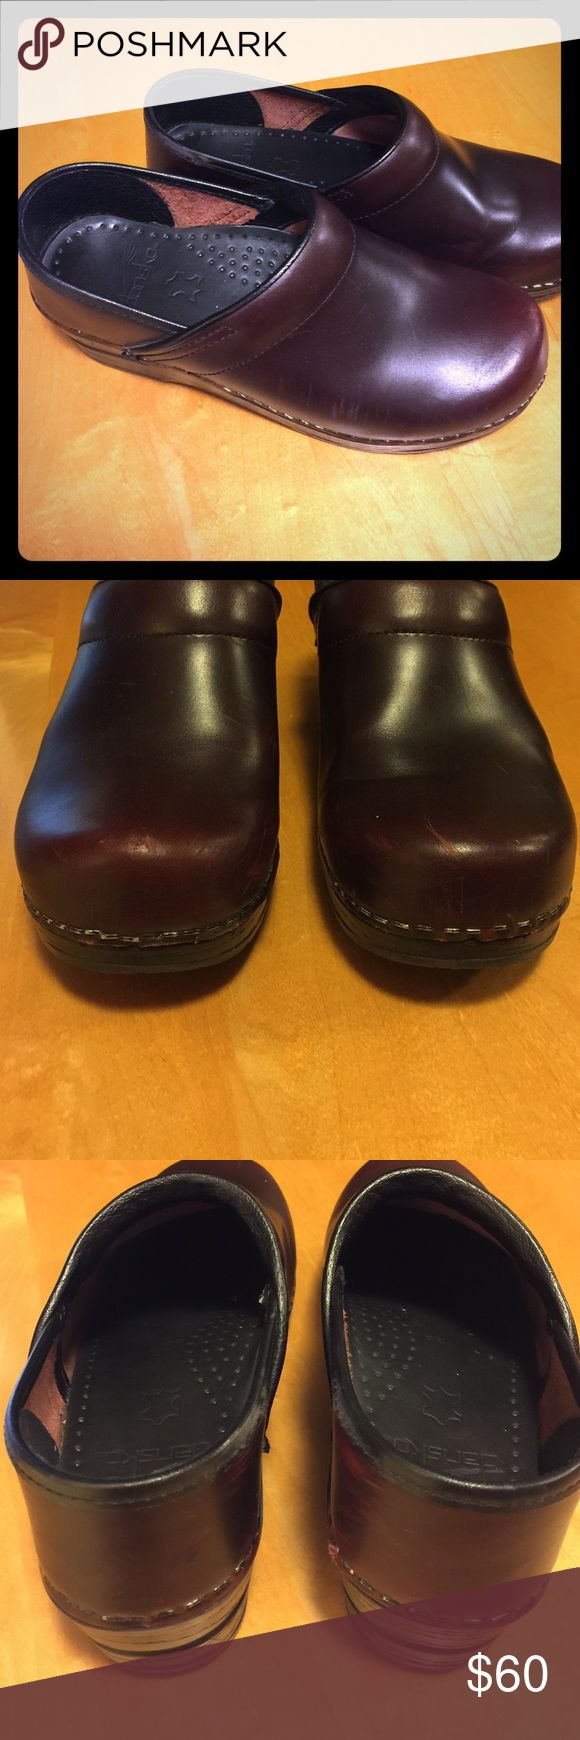 Dansko Burgundy Professional Nursing Clogs Worn a few times - great condition!  Size 36 which fits 5.5-6.  No trades please. Dansko Shoes Mules & Clogs